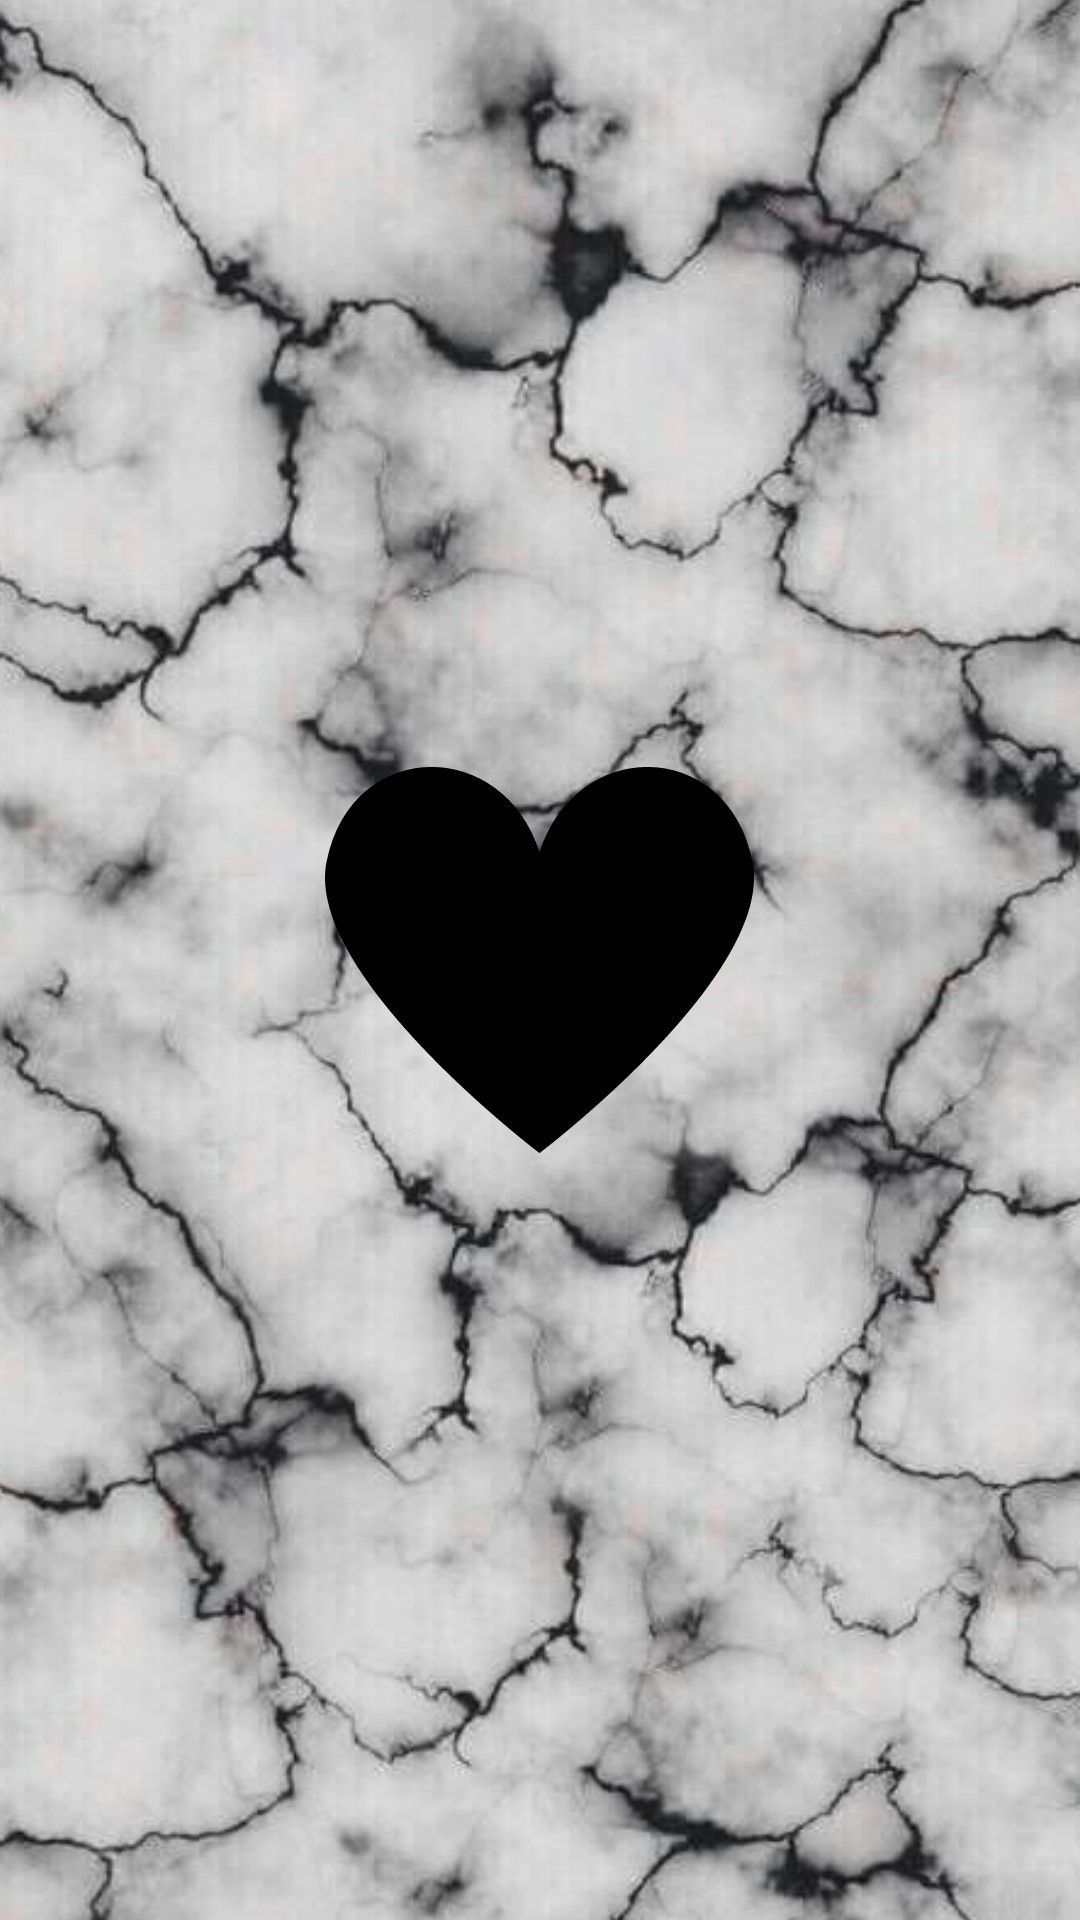 black heart aesthetic wallpapers top free black heart aesthetic backgrounds wallpaperaccess black heart aesthetic wallpapers top